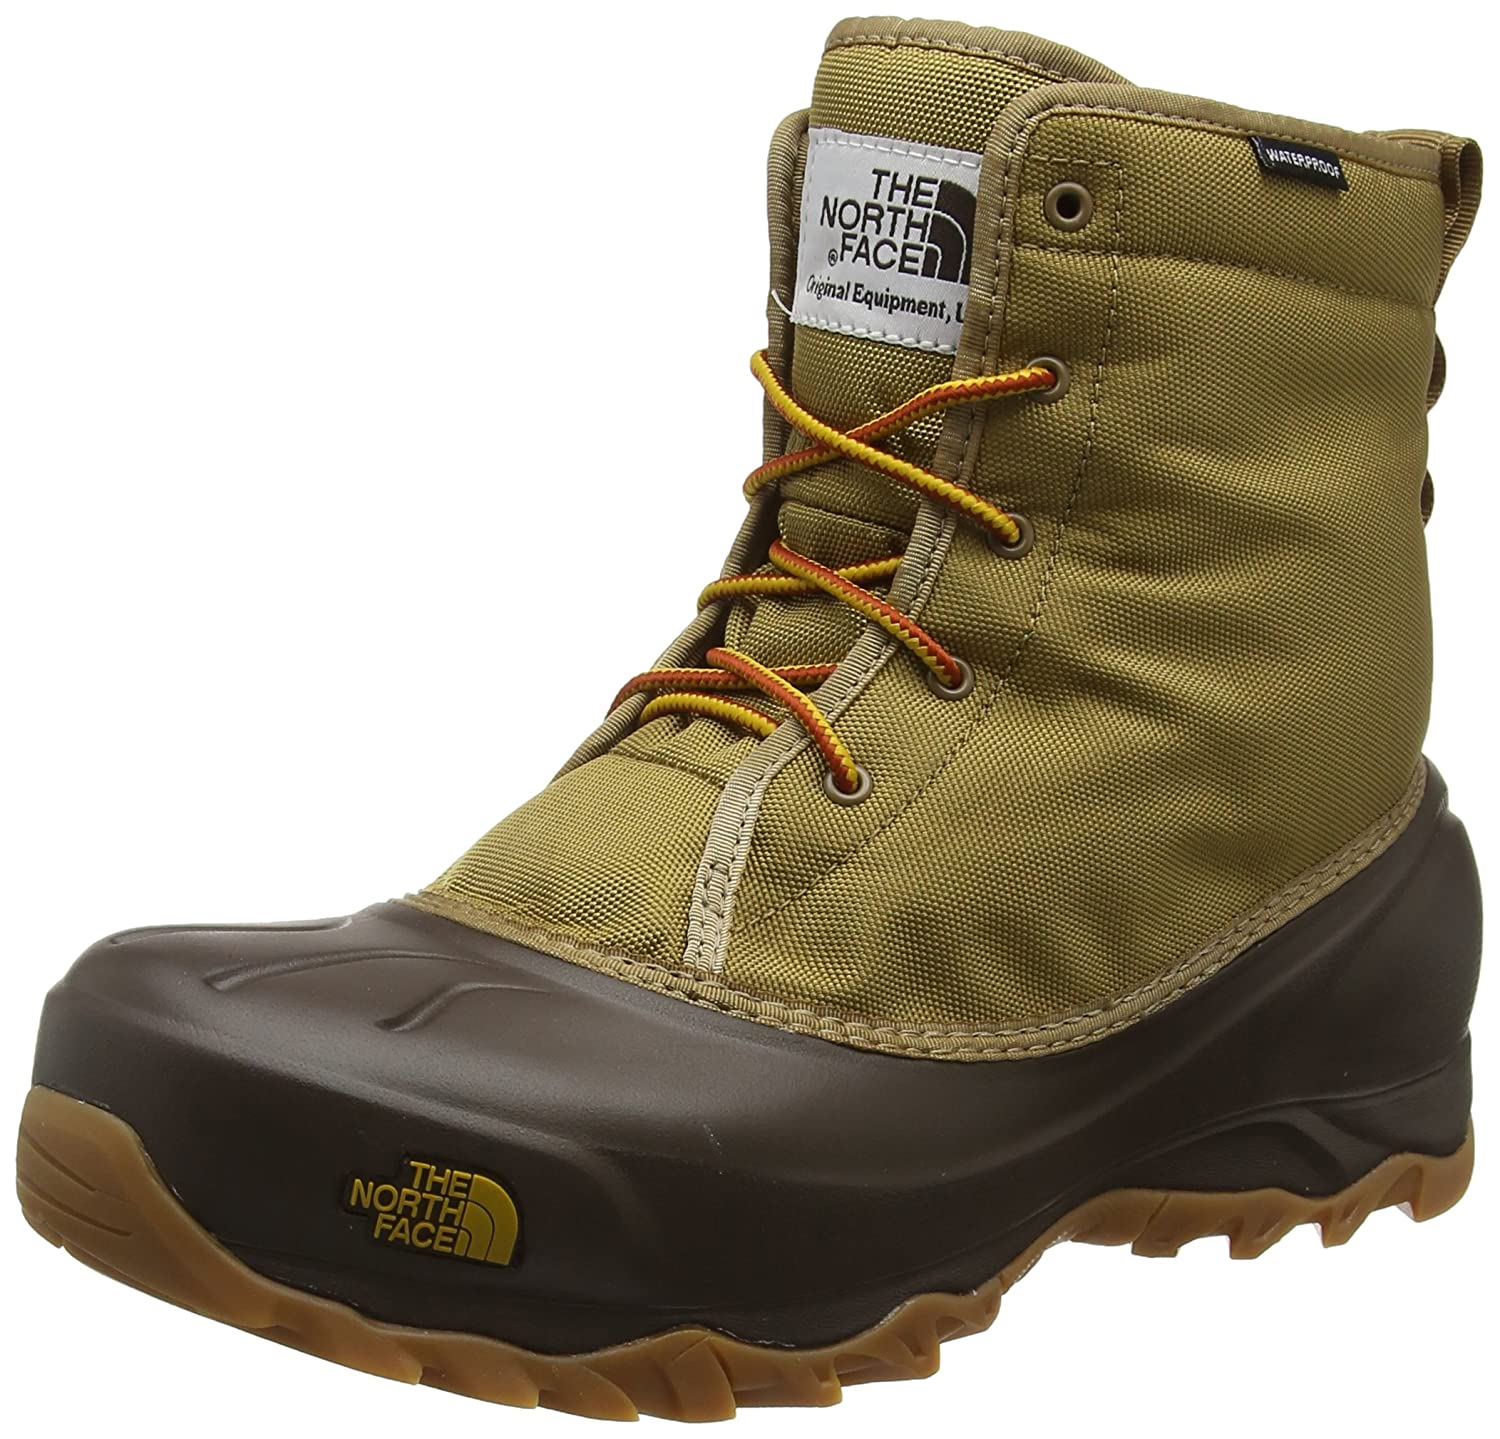 fcf416e4a72 THE NORTH FACE Men's Tsumuro High Rise Hiking Boots